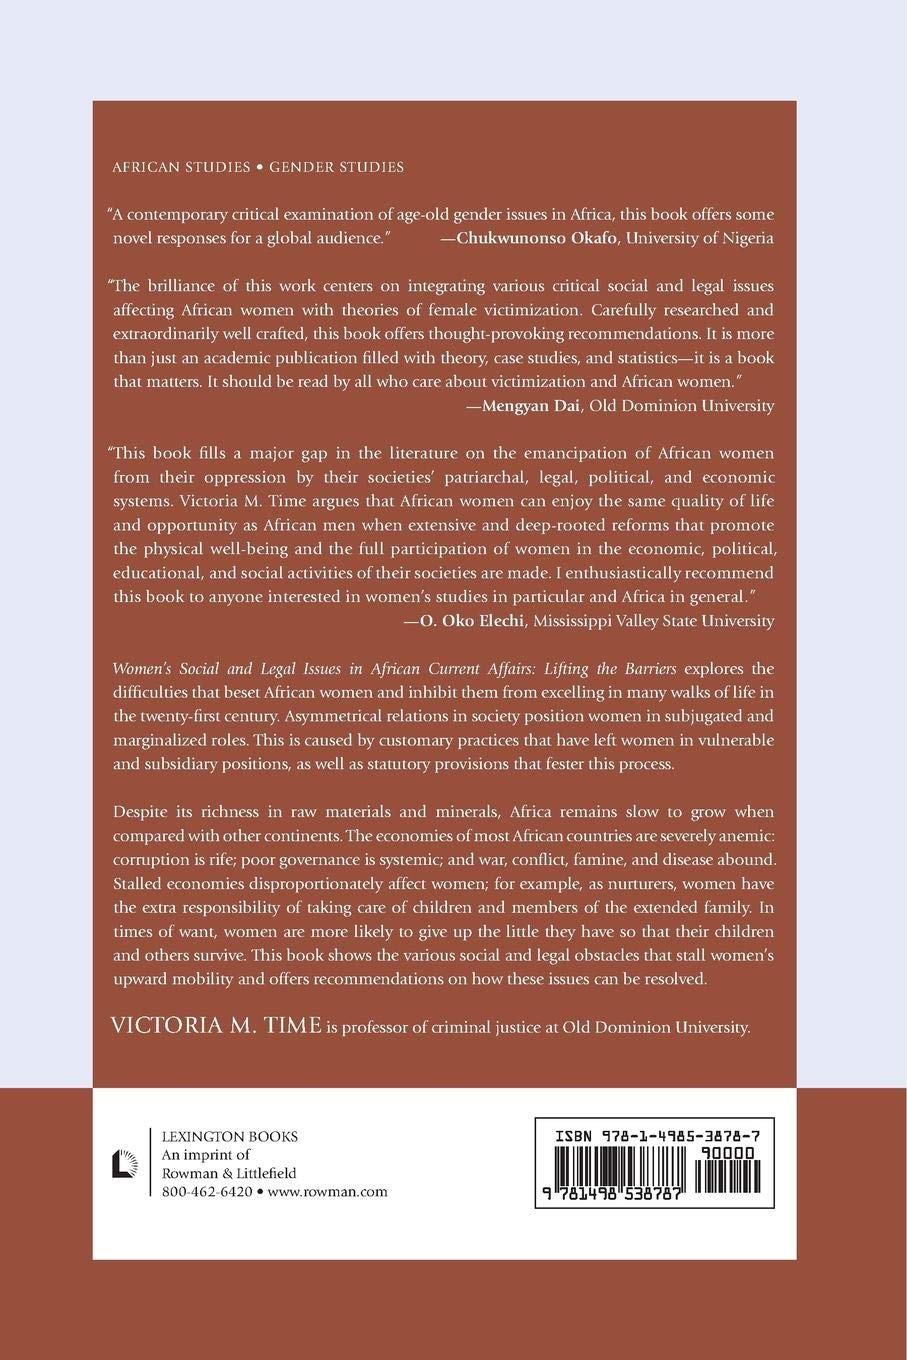 Buy Women's Social and Legal Issues in African Current Affairs